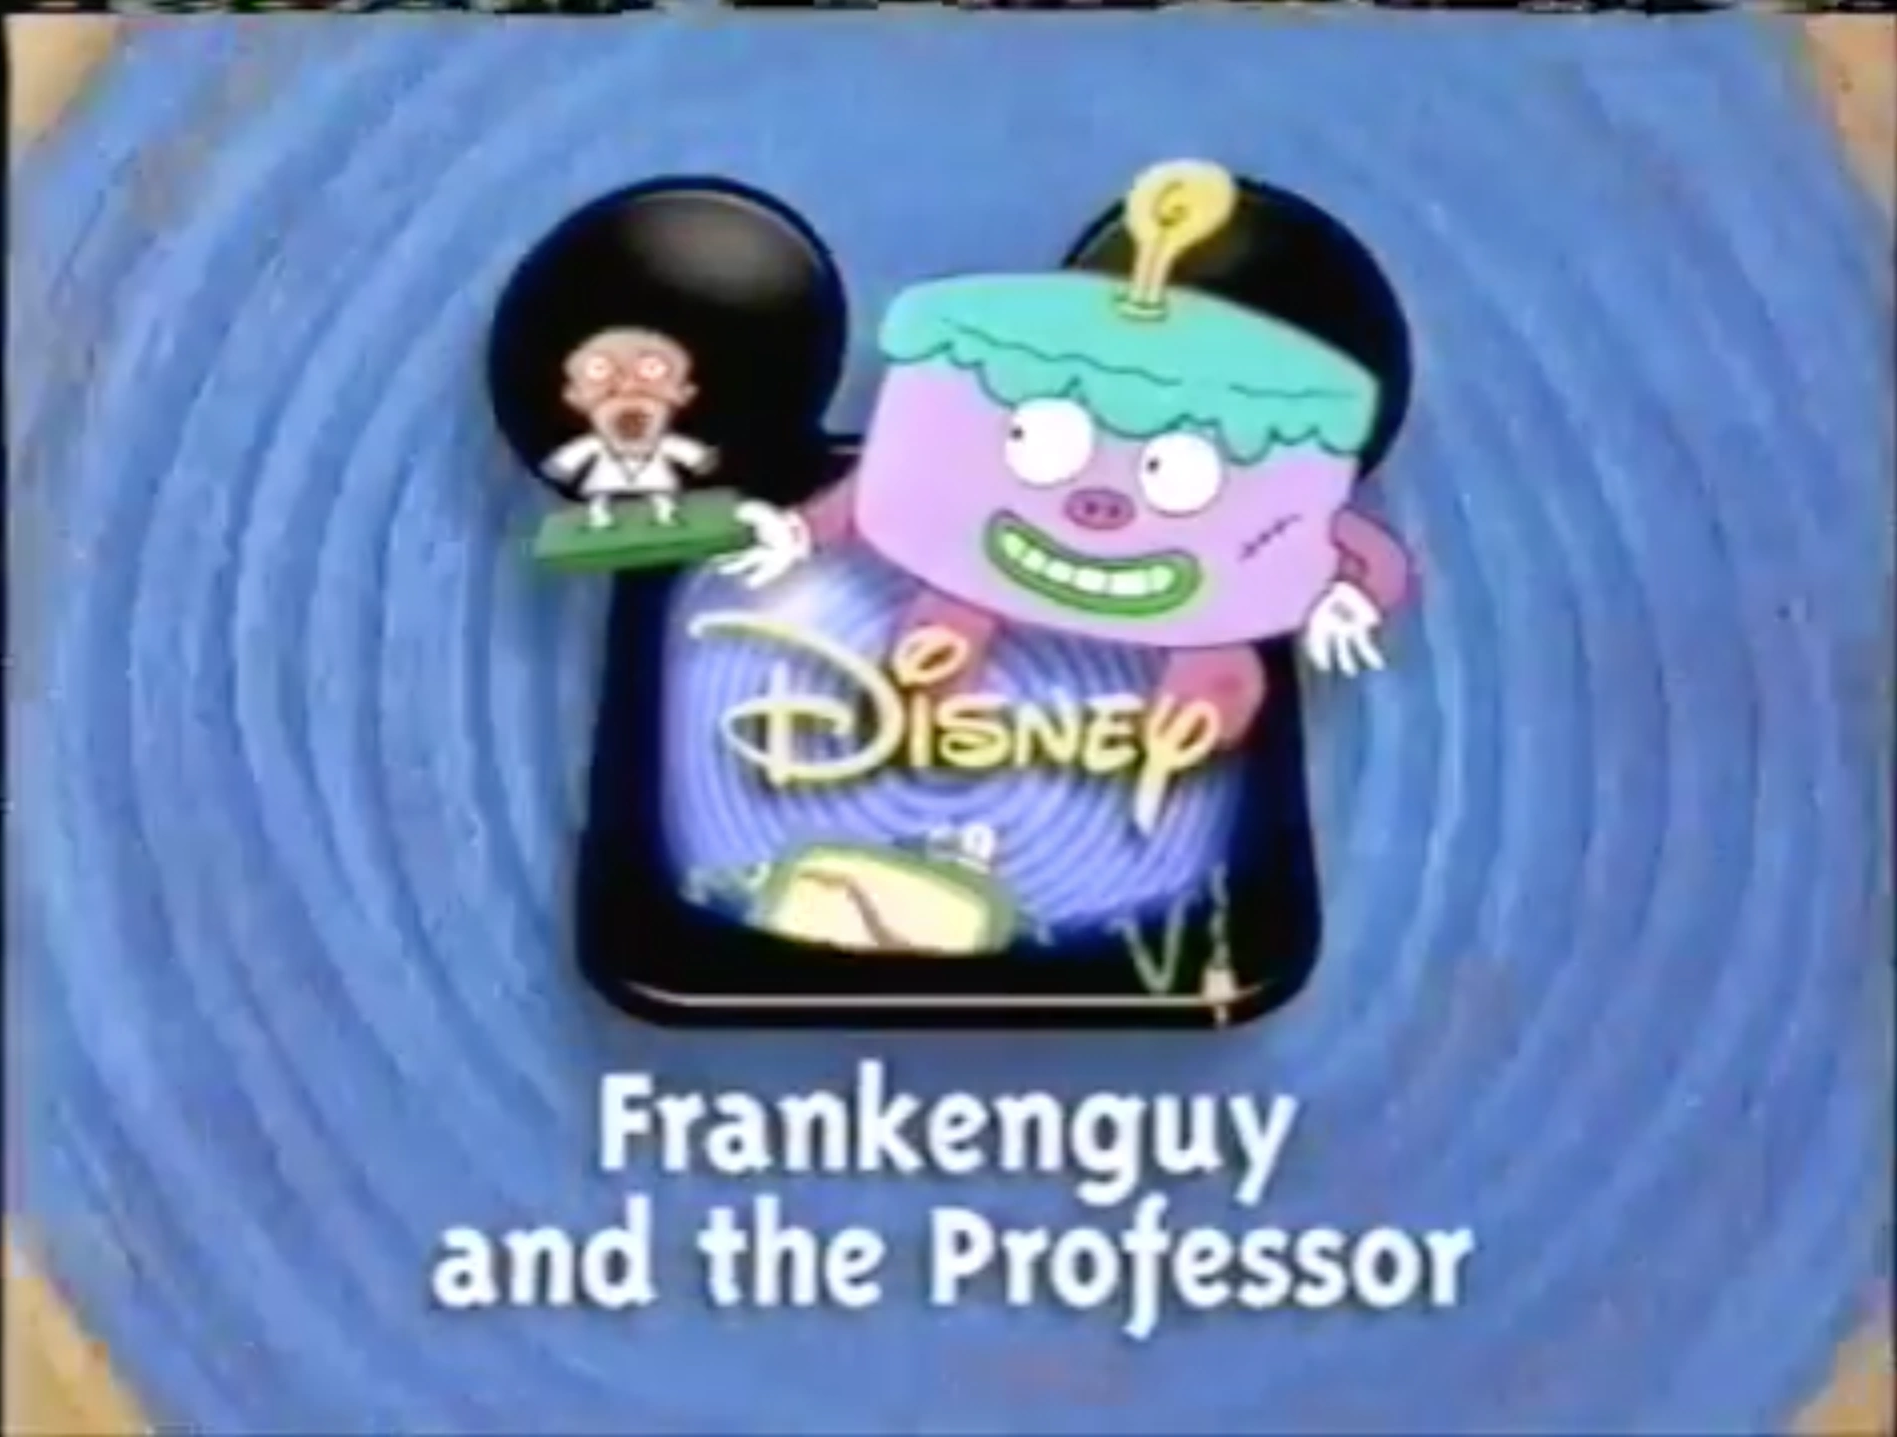 Frankenguy and the Professor